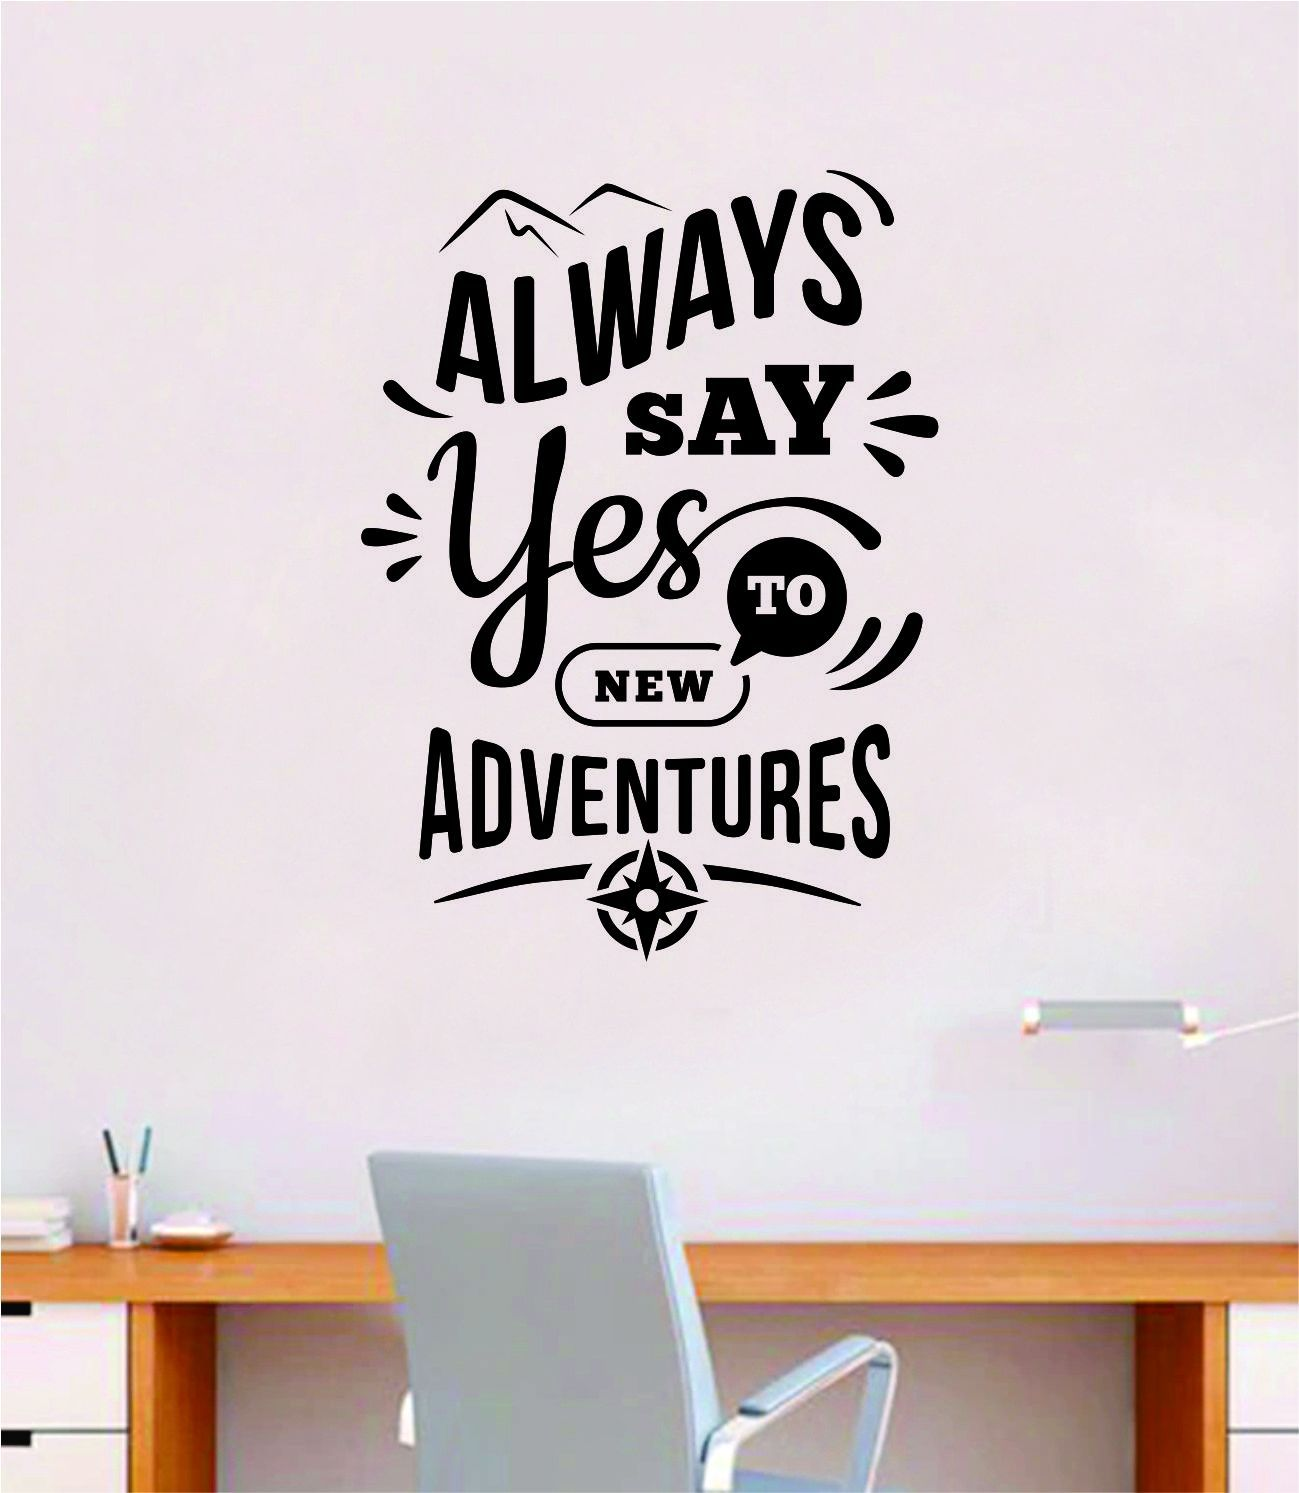 Always Say Yes to New Adventures V2 Wall Decal Sticker Vinyl Art Bedroom Room Home Decor Inspirational School Teen Baby Nursery Travel Wanderlust Mountains - red